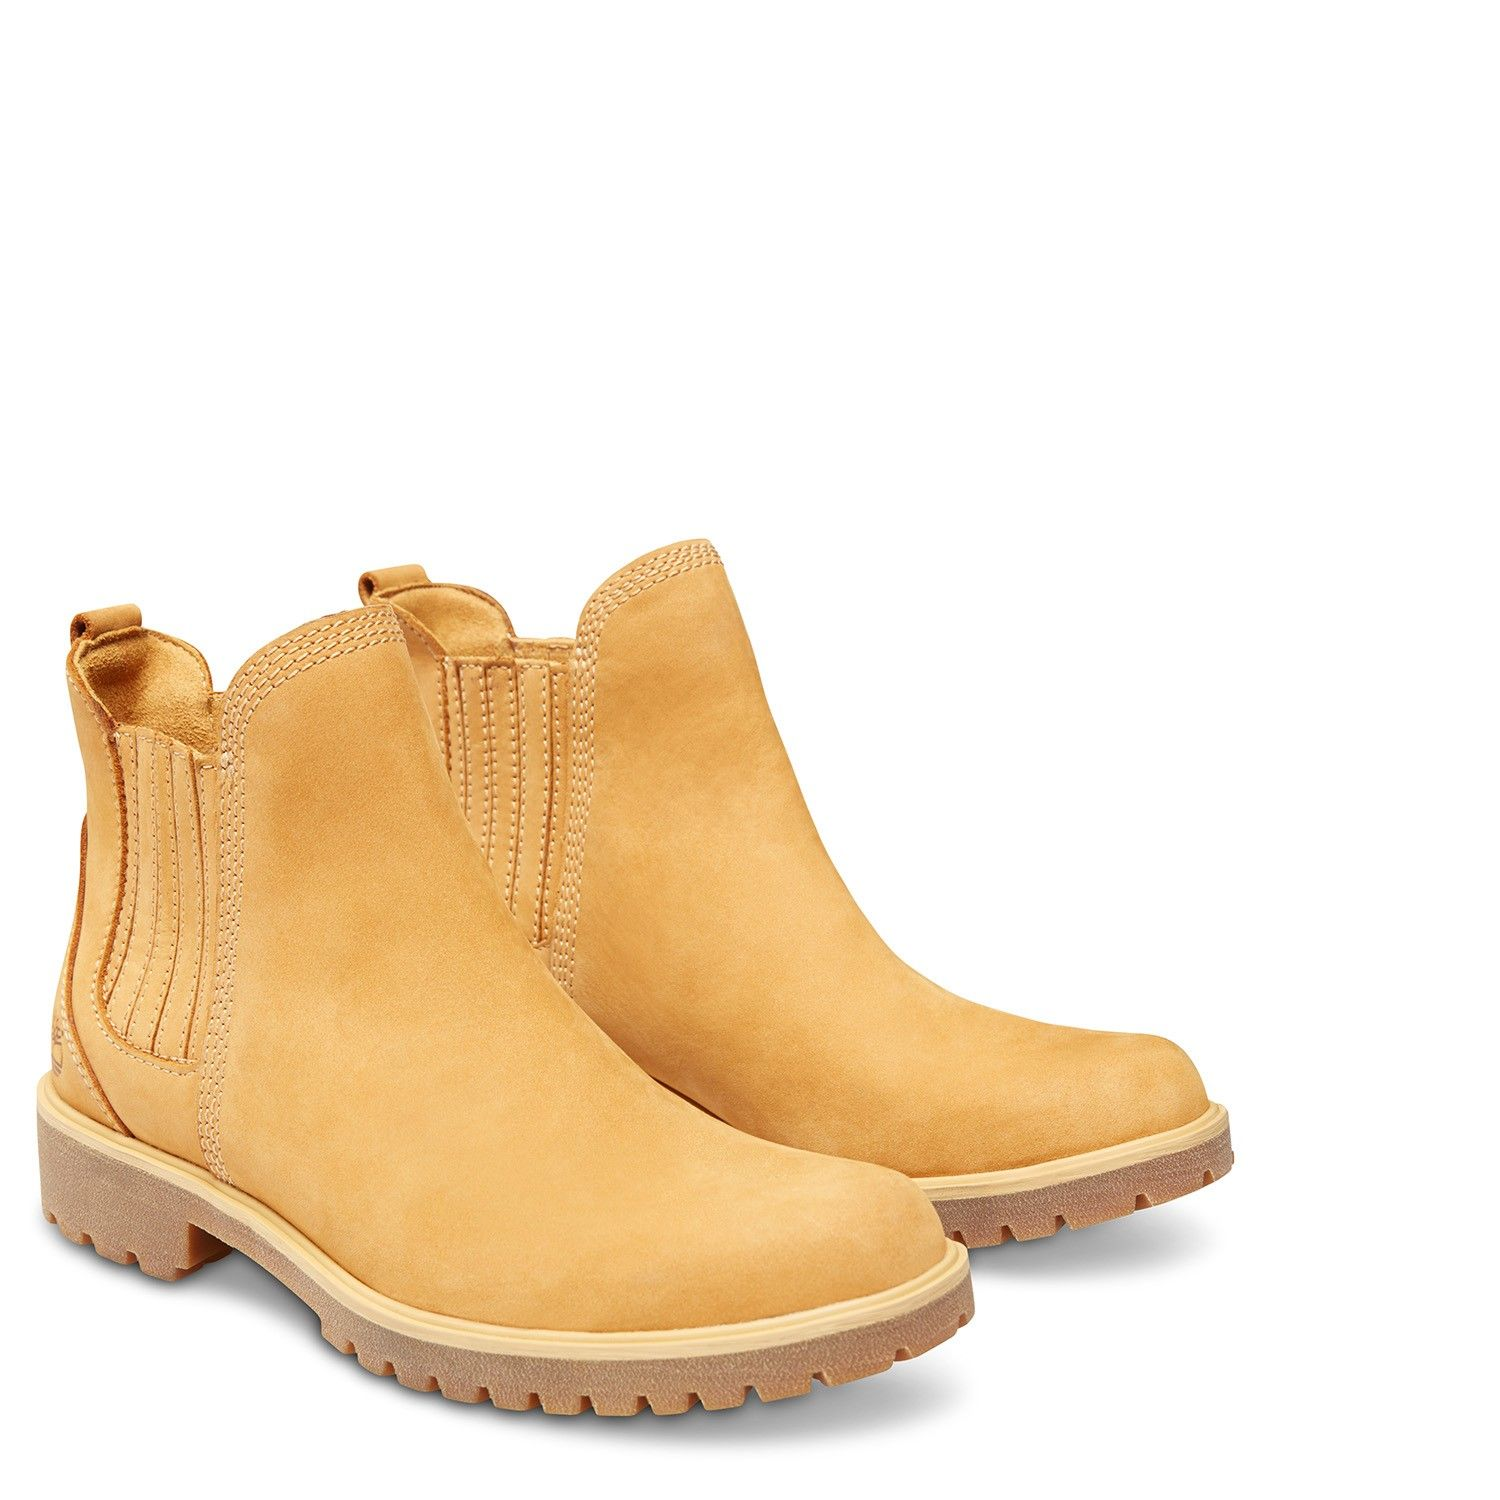 Lyonsdale Beige Suede Ankle Boots